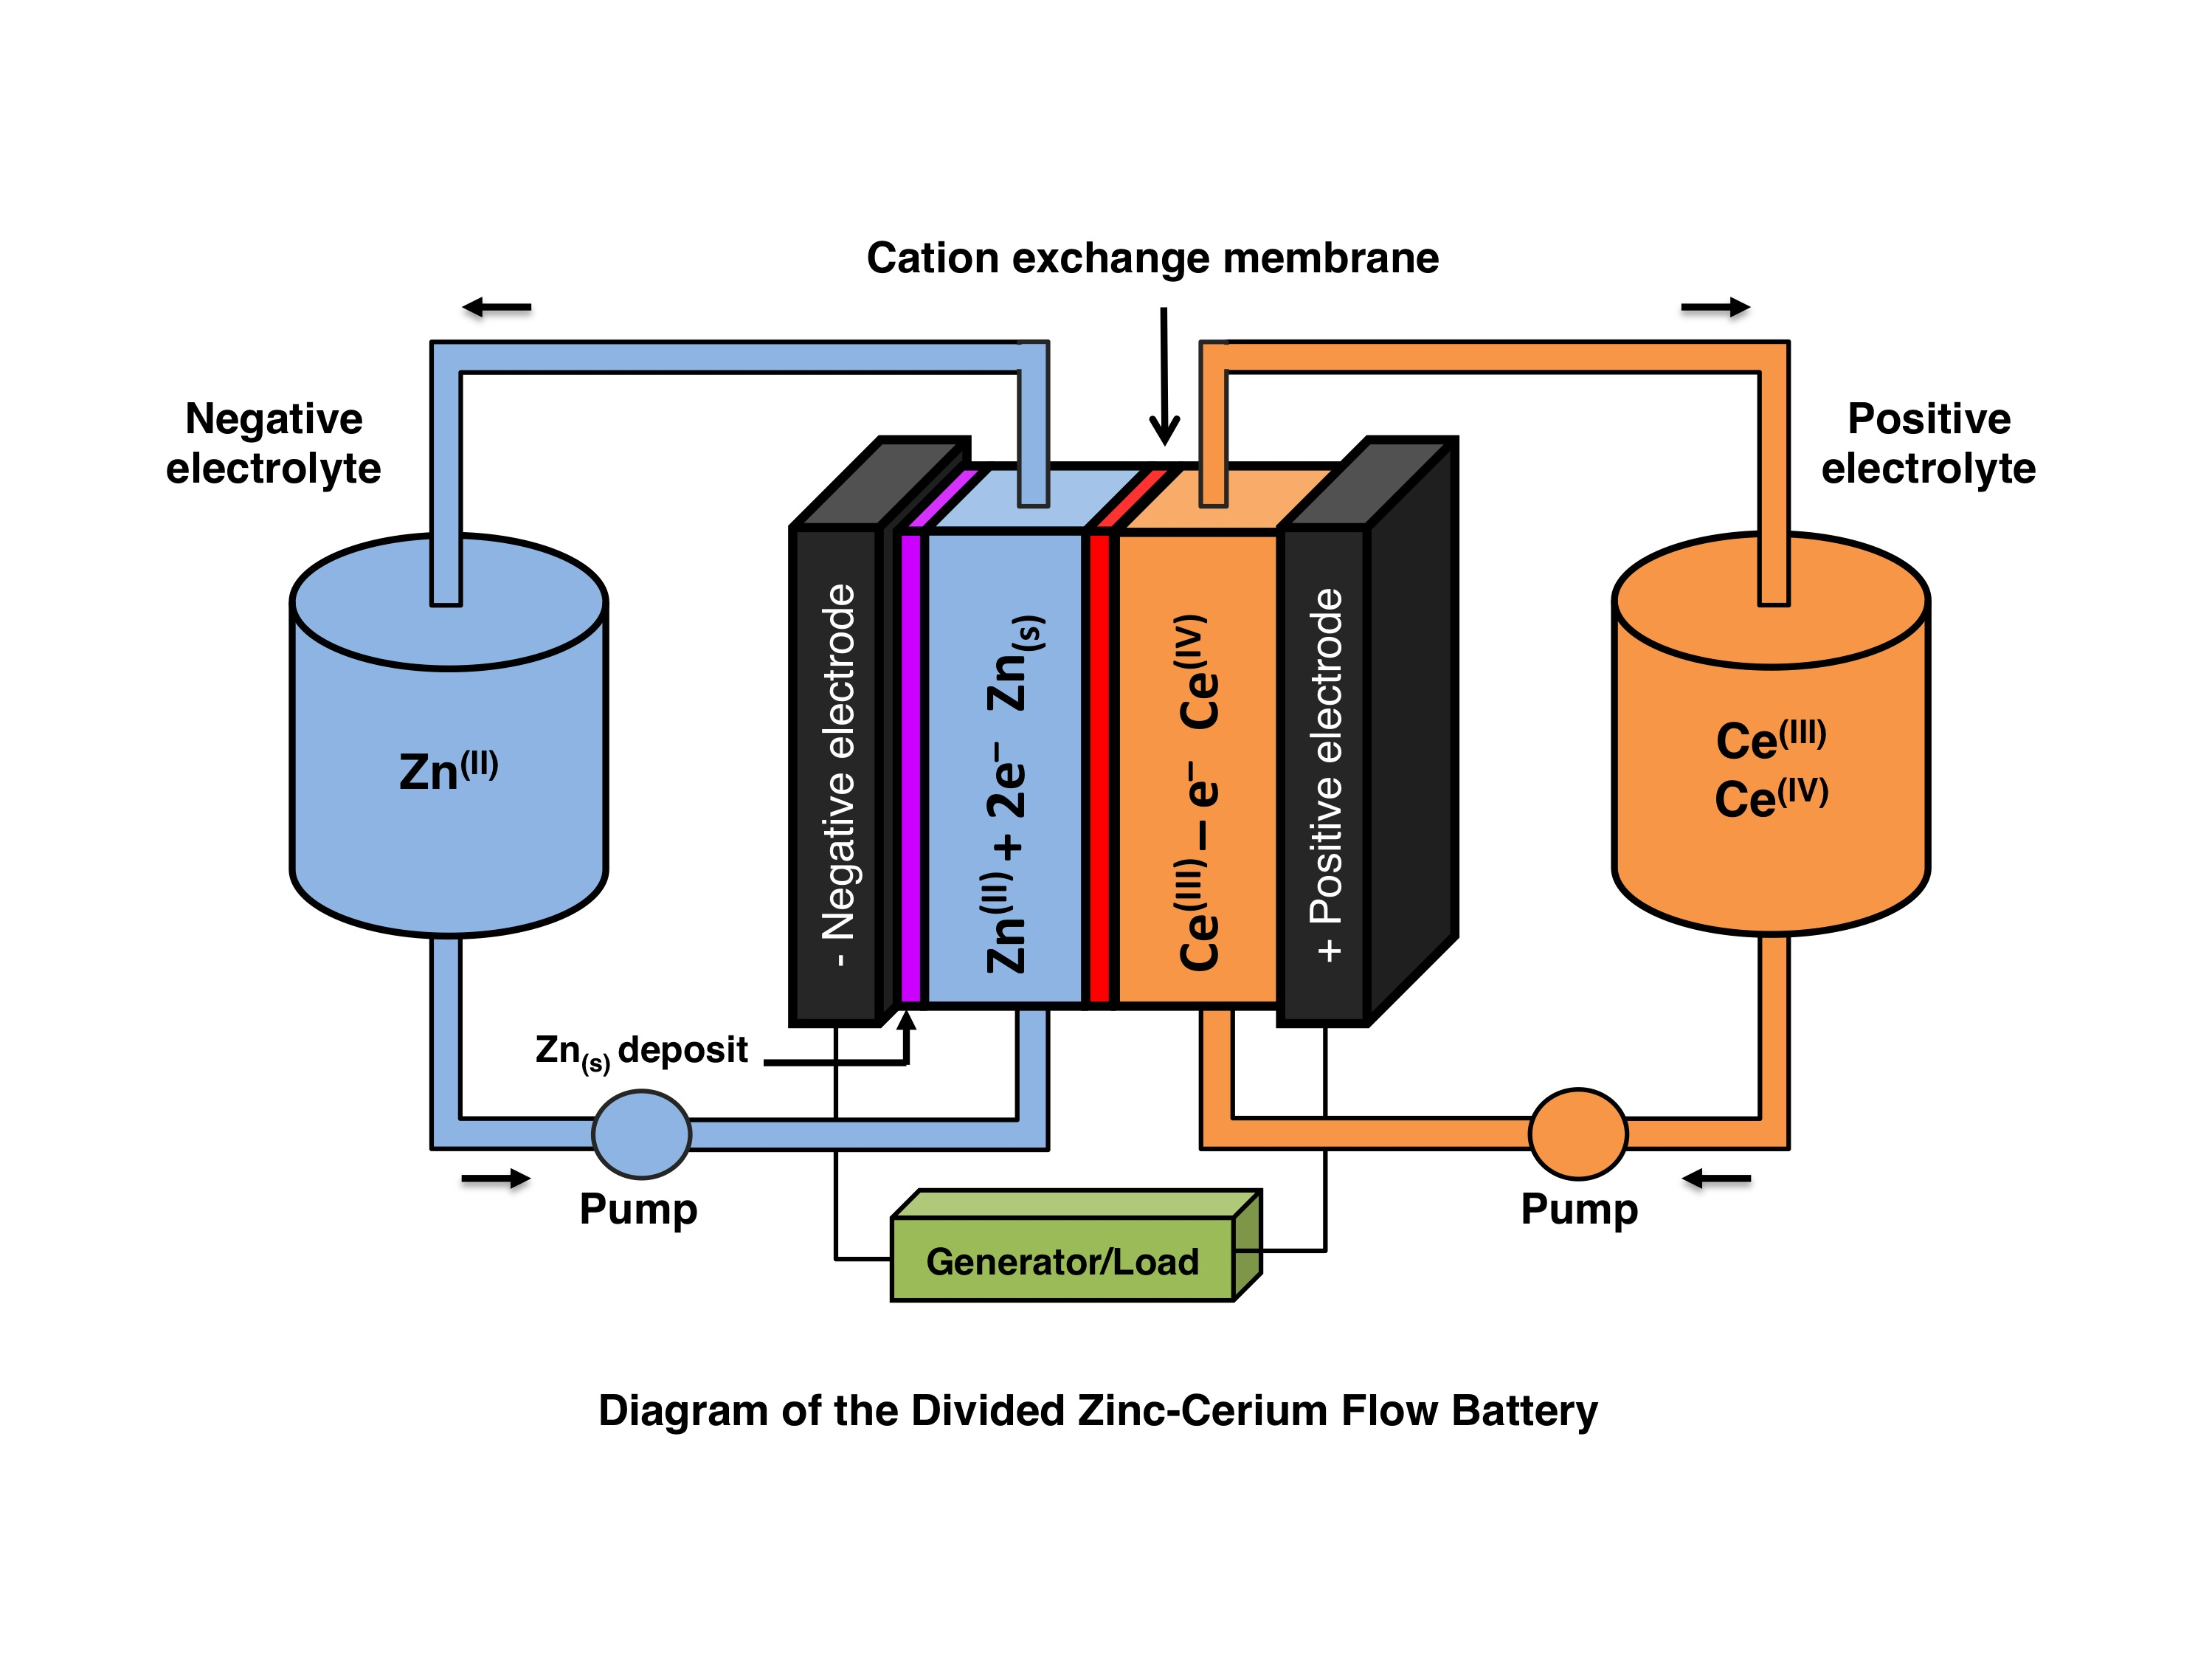 Filediagram of the divided zinc cerium redox flow batteryg filediagram of the divided zinc cerium redox flow batteryg ccuart Images